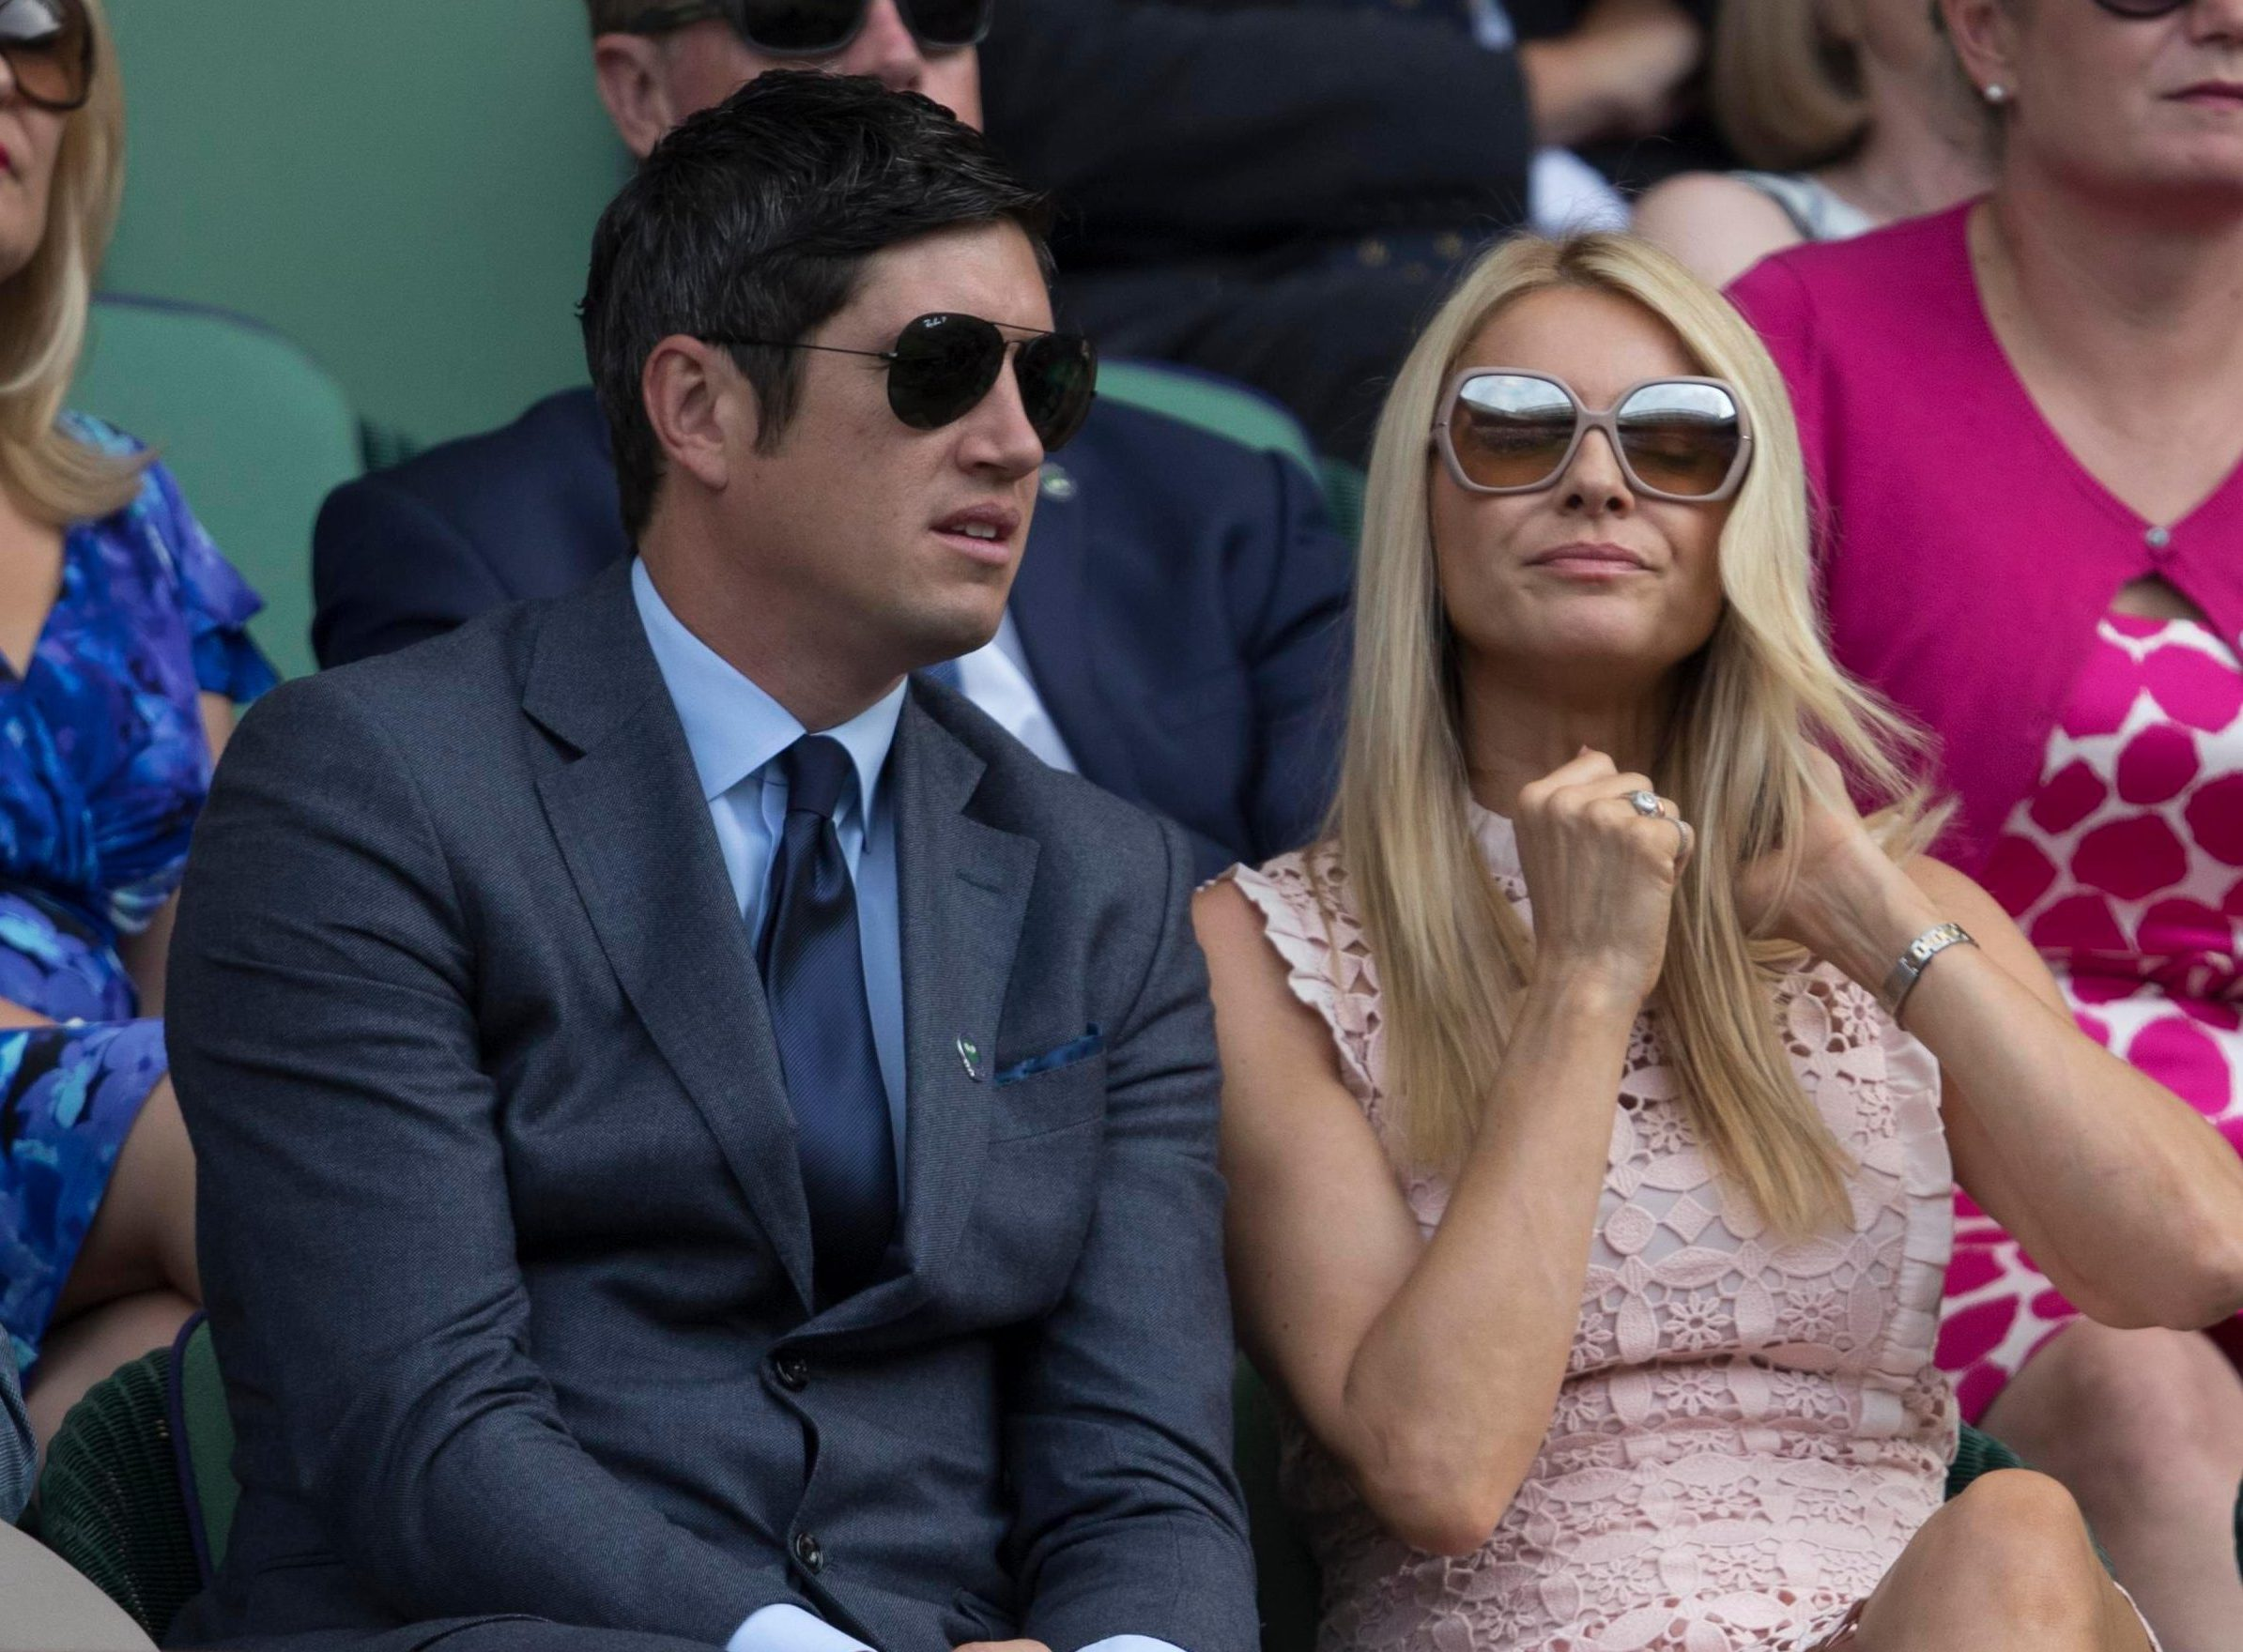 When did Tess Daly marry Vernon Kay, how old is she and do they have any kids?